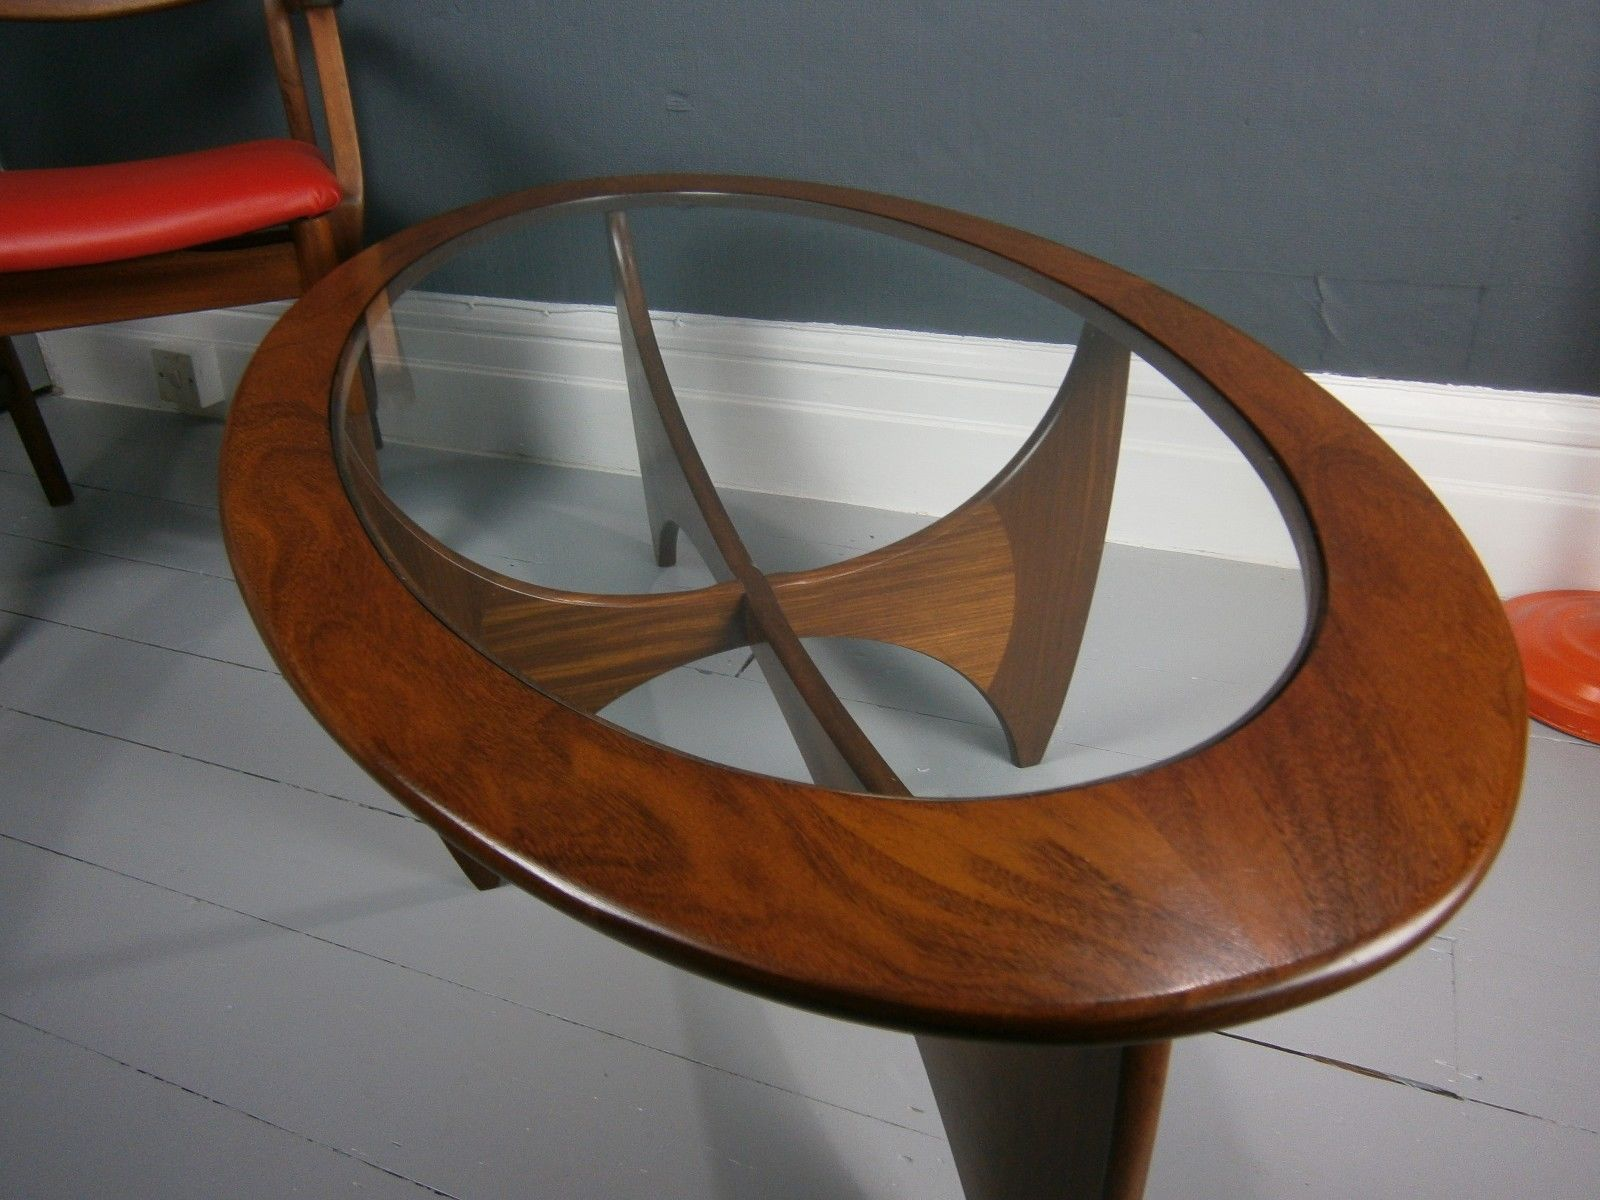 Details about vintage retro mid century g plan astro oval teak details about vintage retro mid century g plan astro oval teak coffee table danish style glass geotapseo Gallery